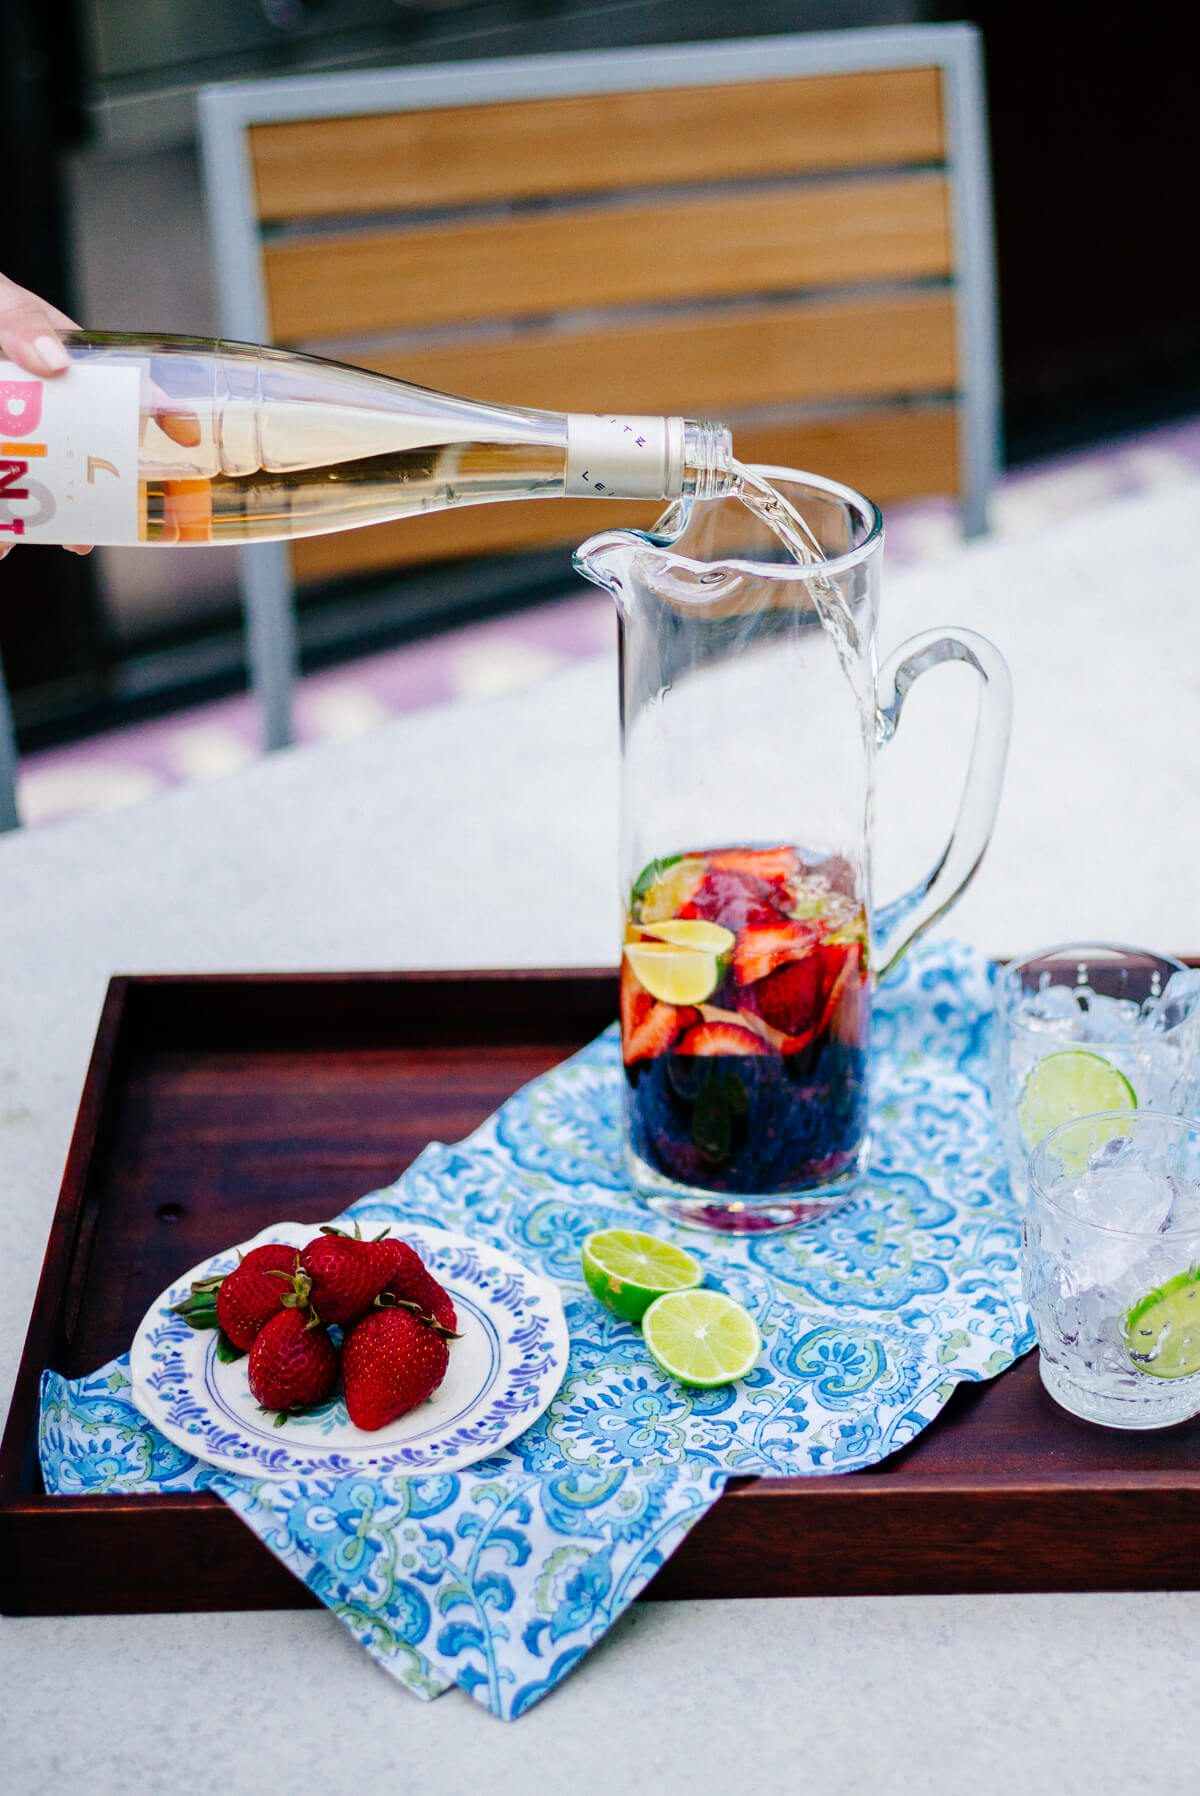 Making Rose Sangria for the summer with berries and stone fruit